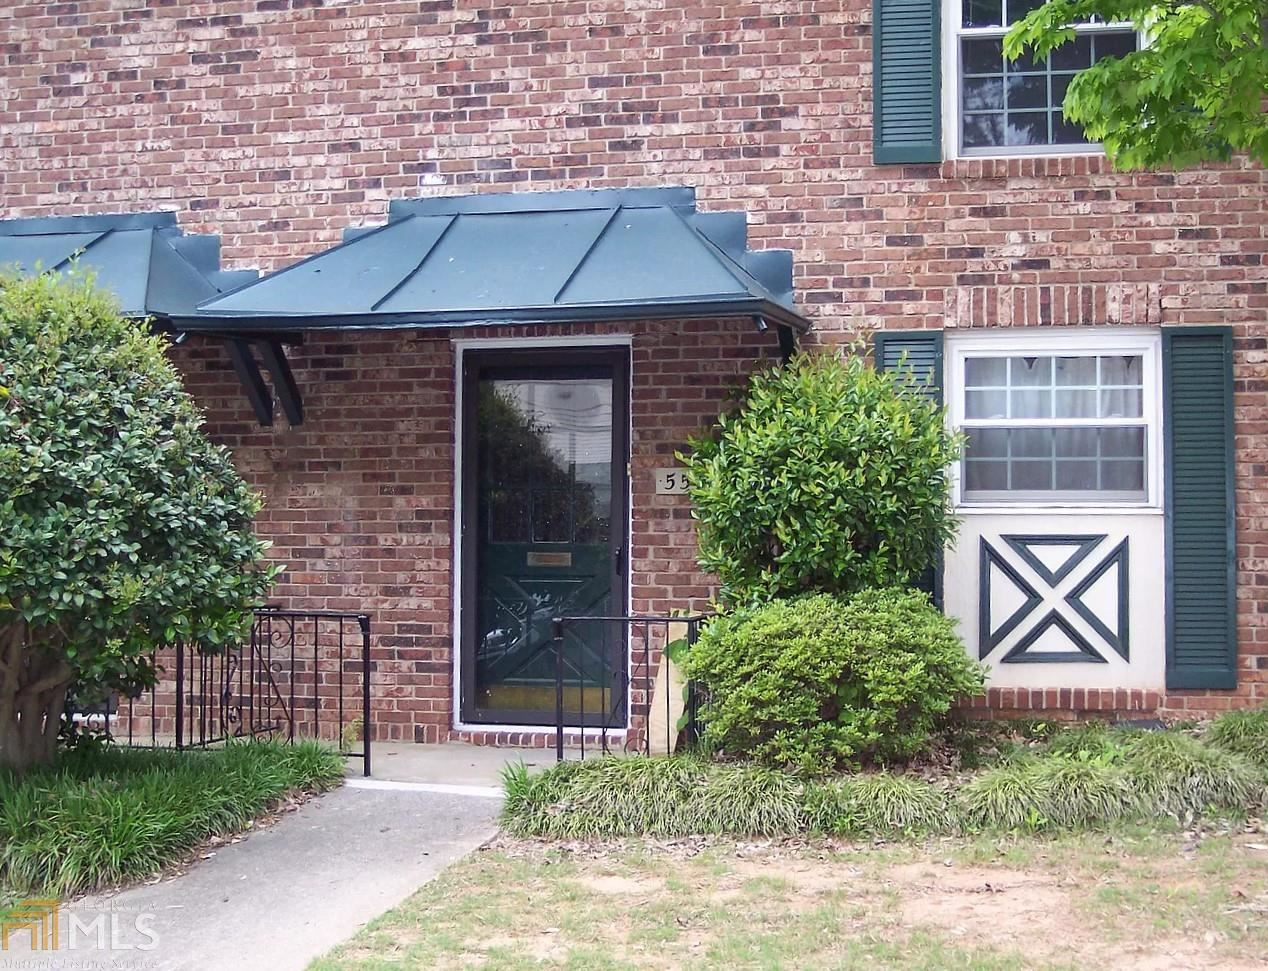 5551 Kingsport Dr, Atlanta, GA 30342 - MLS#: 8875345